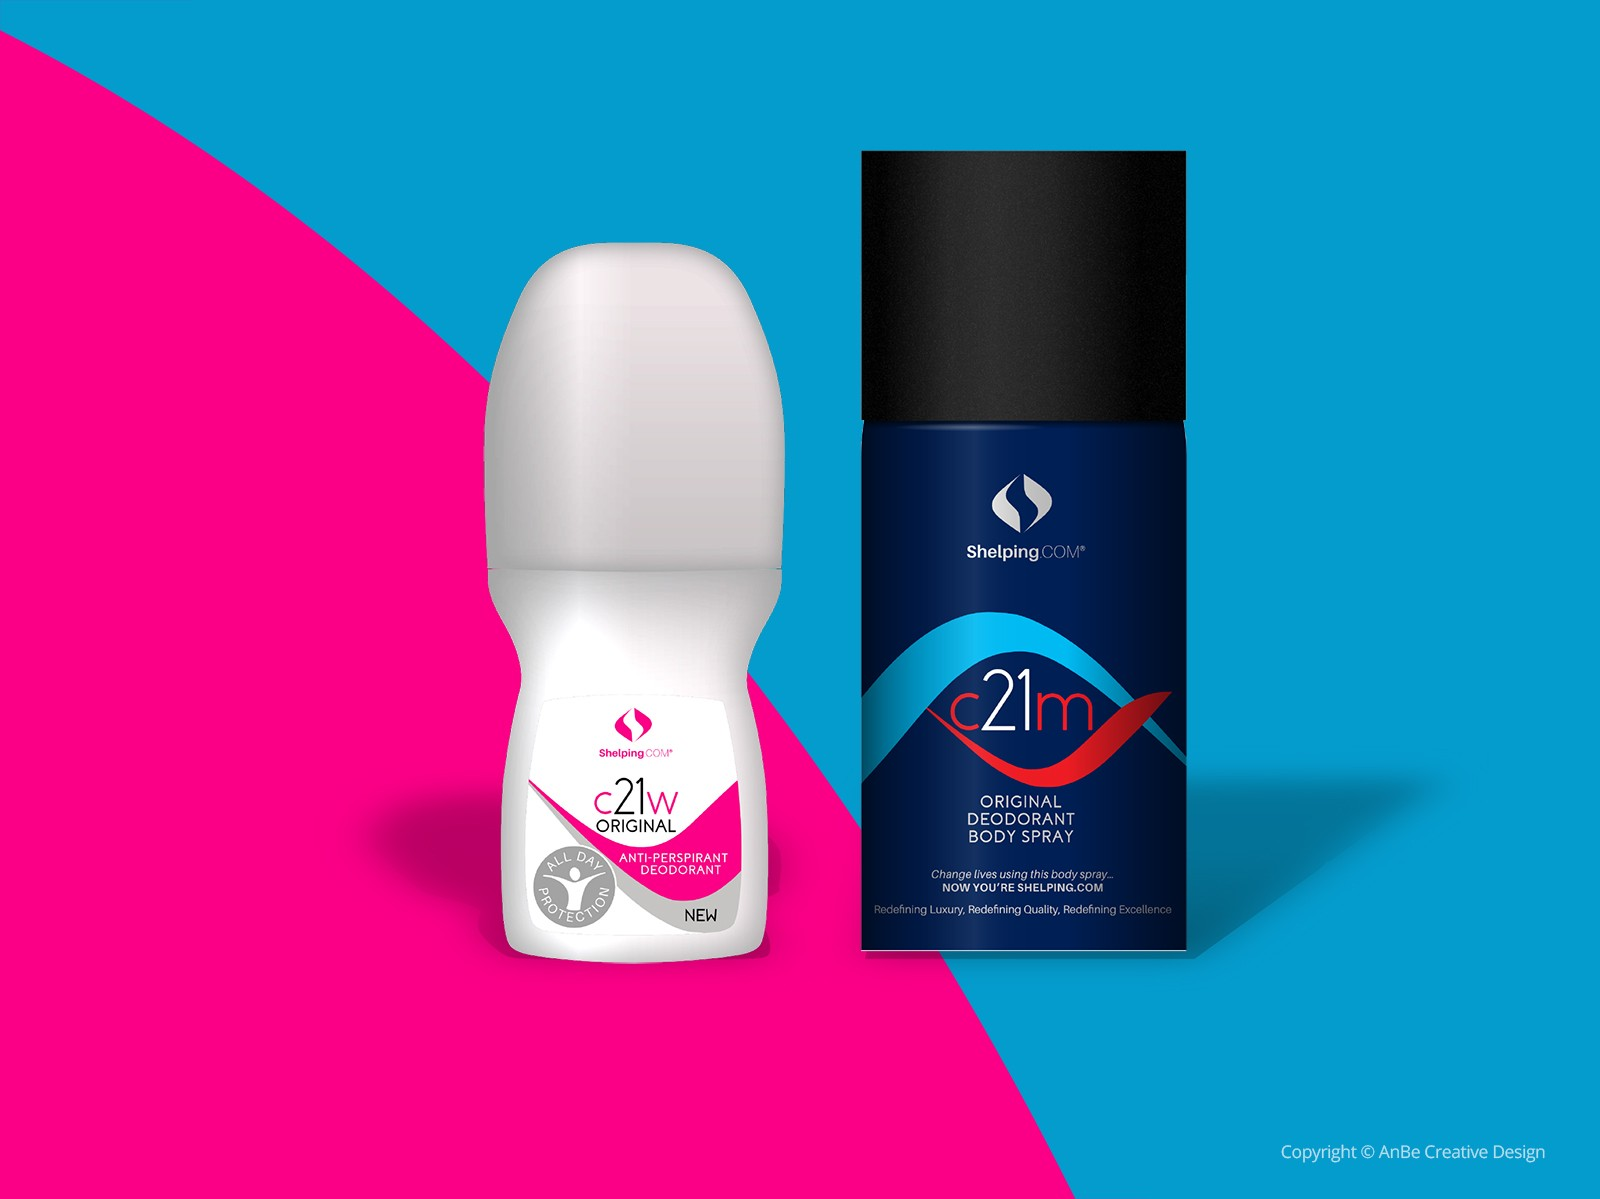 packaging designs for his and hers deodorant